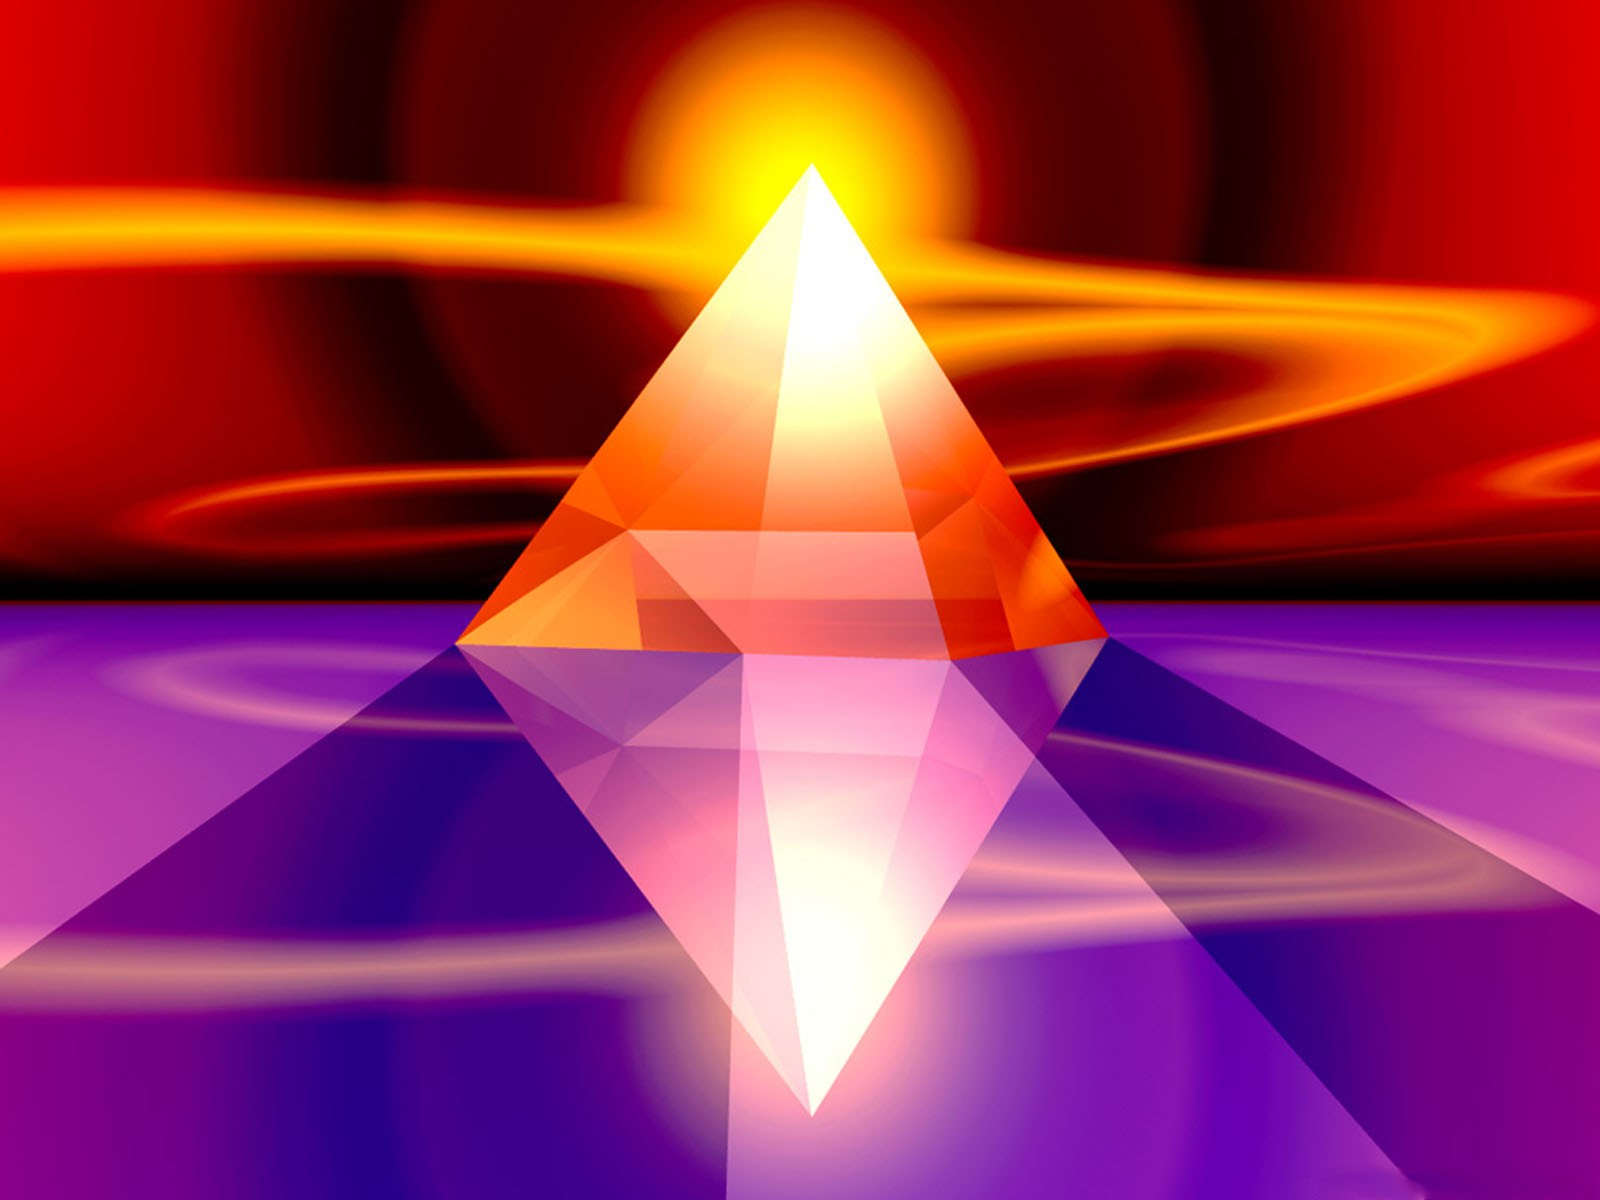 Crystal_Sun_Pyramid